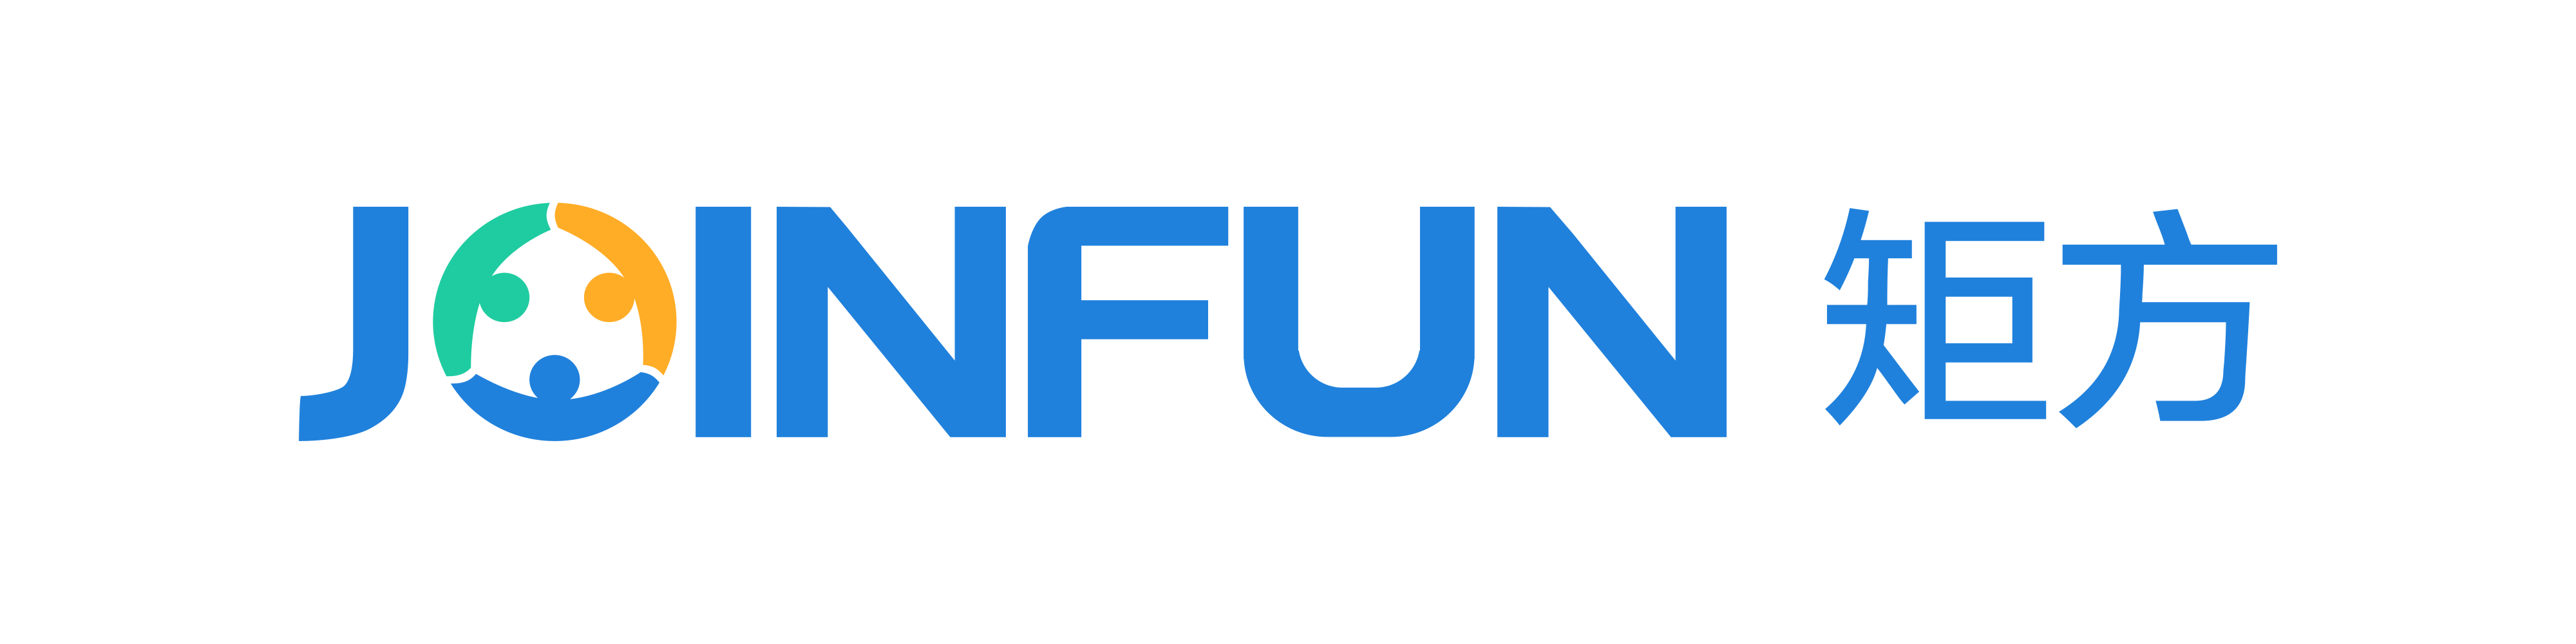 Shanghai Joinfun Information Technology Co. Ltd